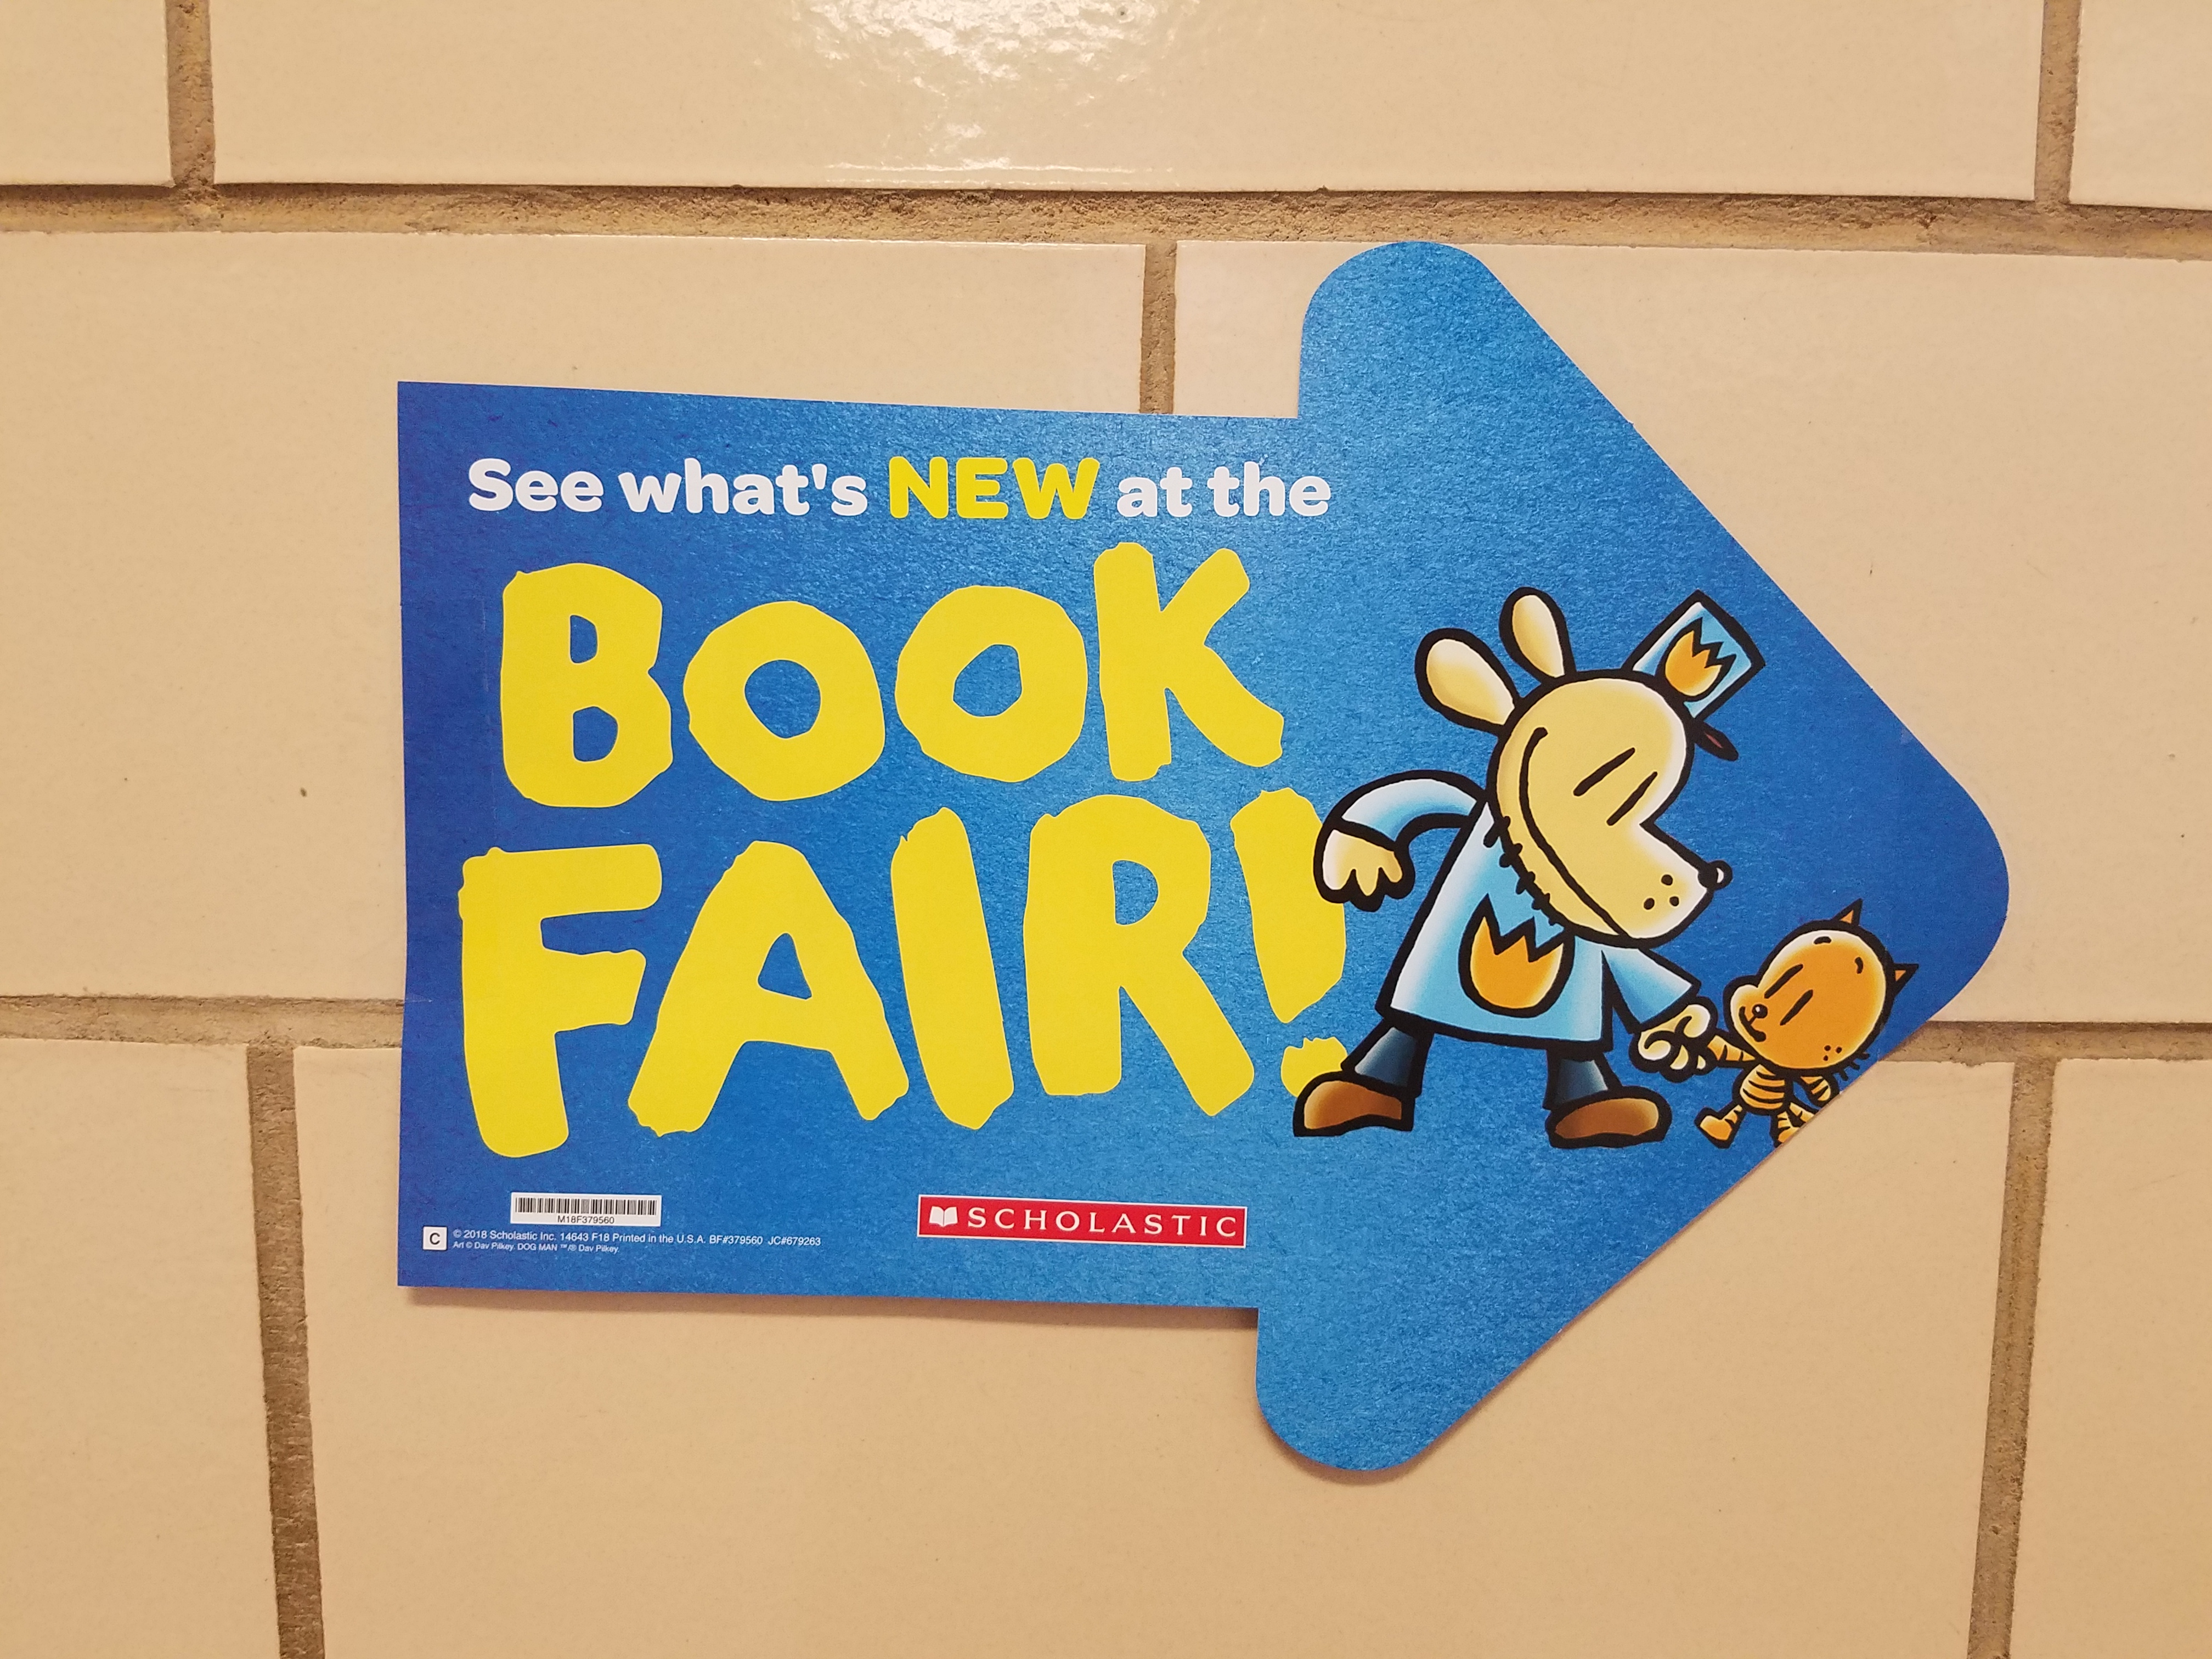 The Book Fair is coming to Union Elementary.